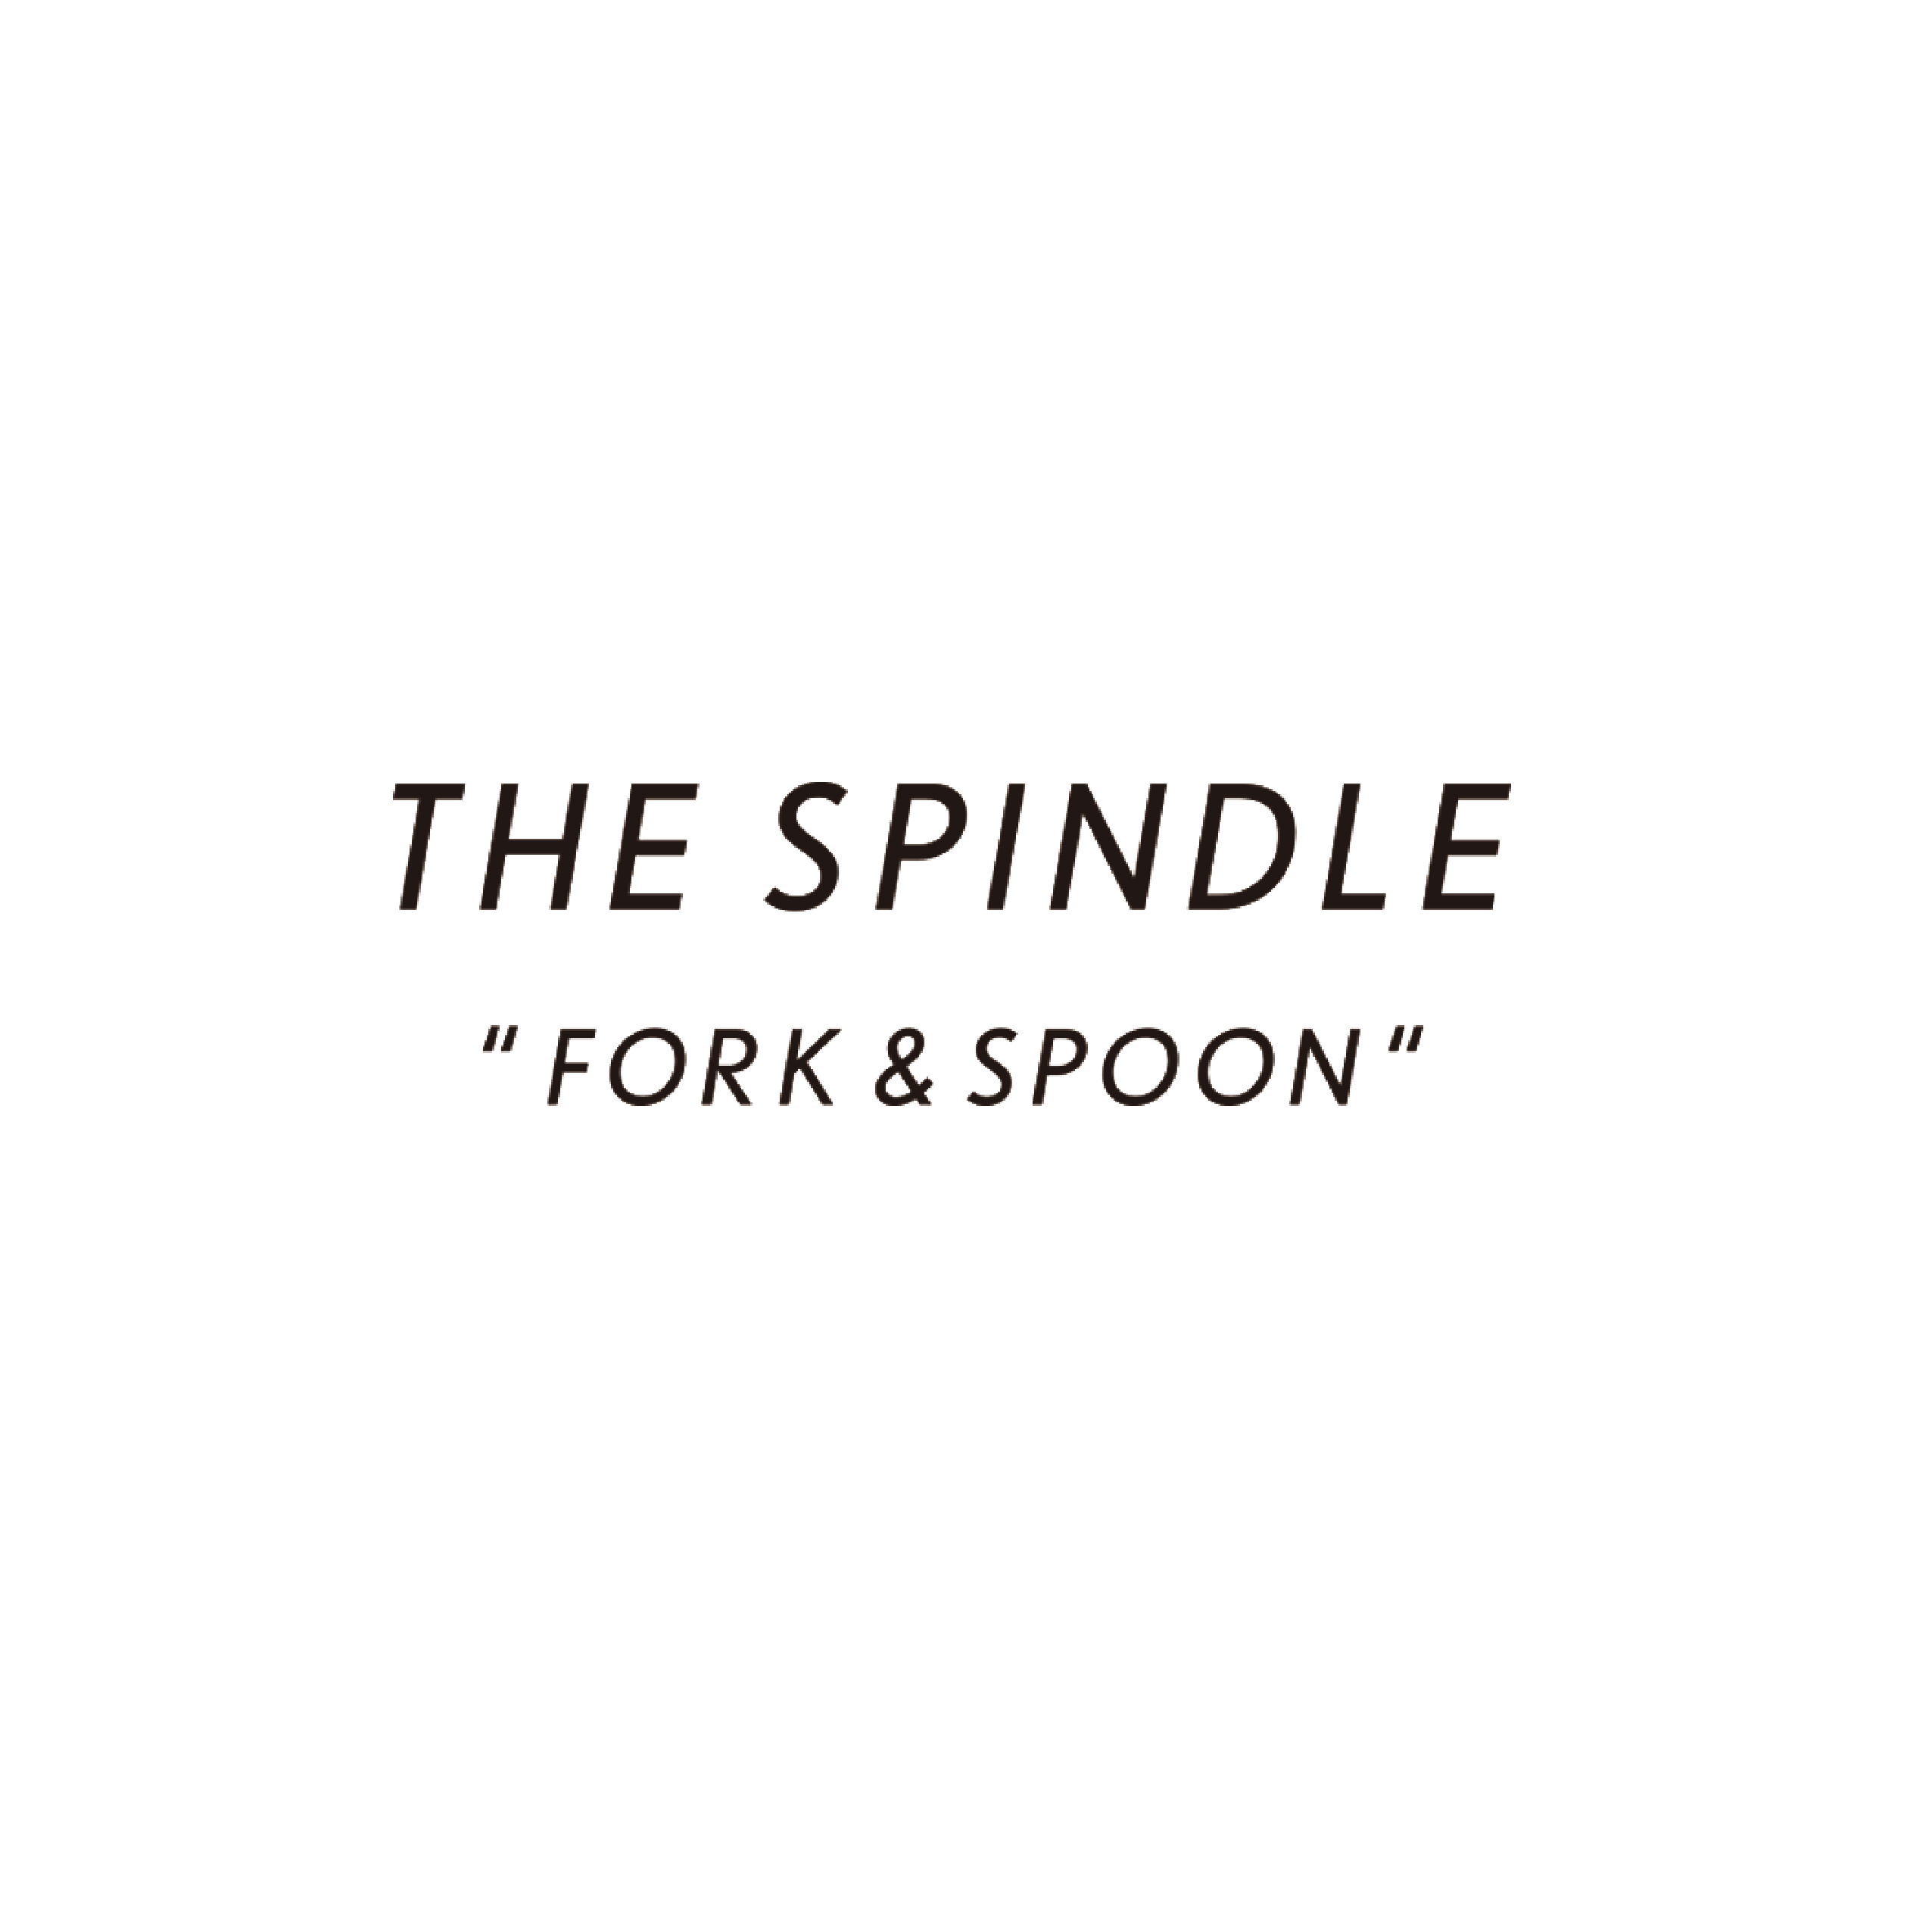 THE SPINDLE